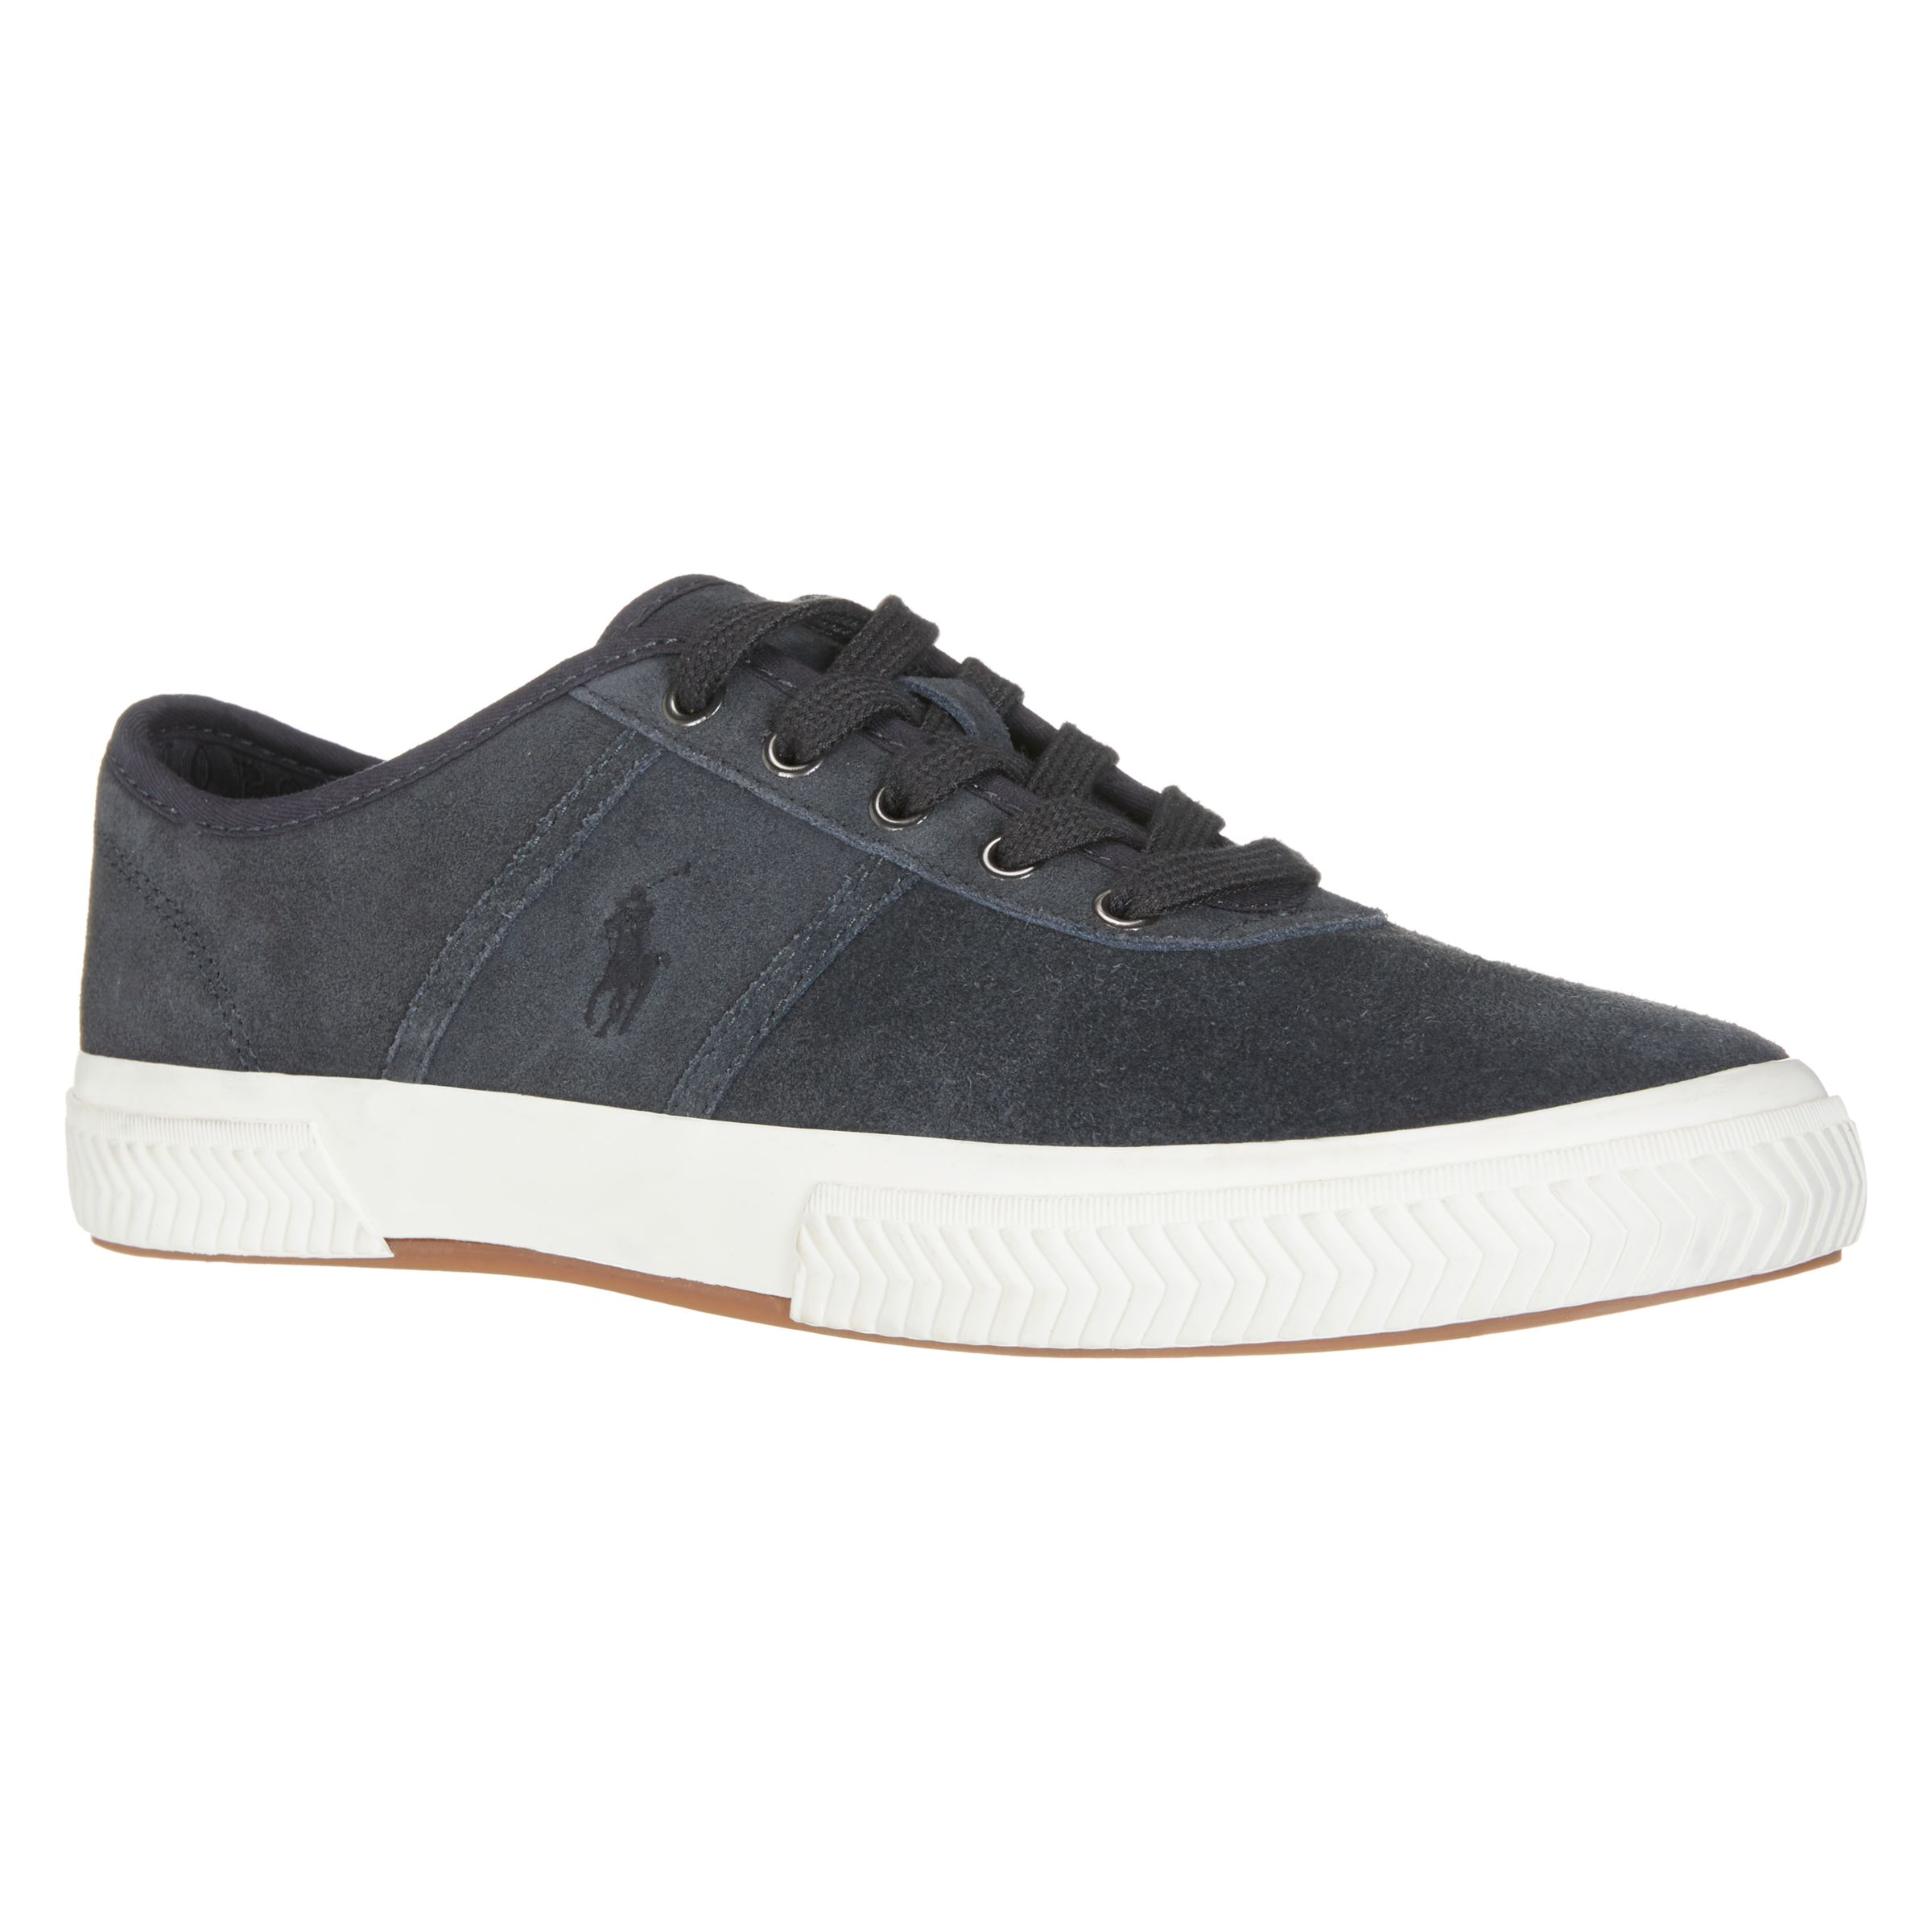 Trainers Lauren John Polo Low Partners Suede Top At Tyrian Ralph Lewisamp; Nw0OPXn8k